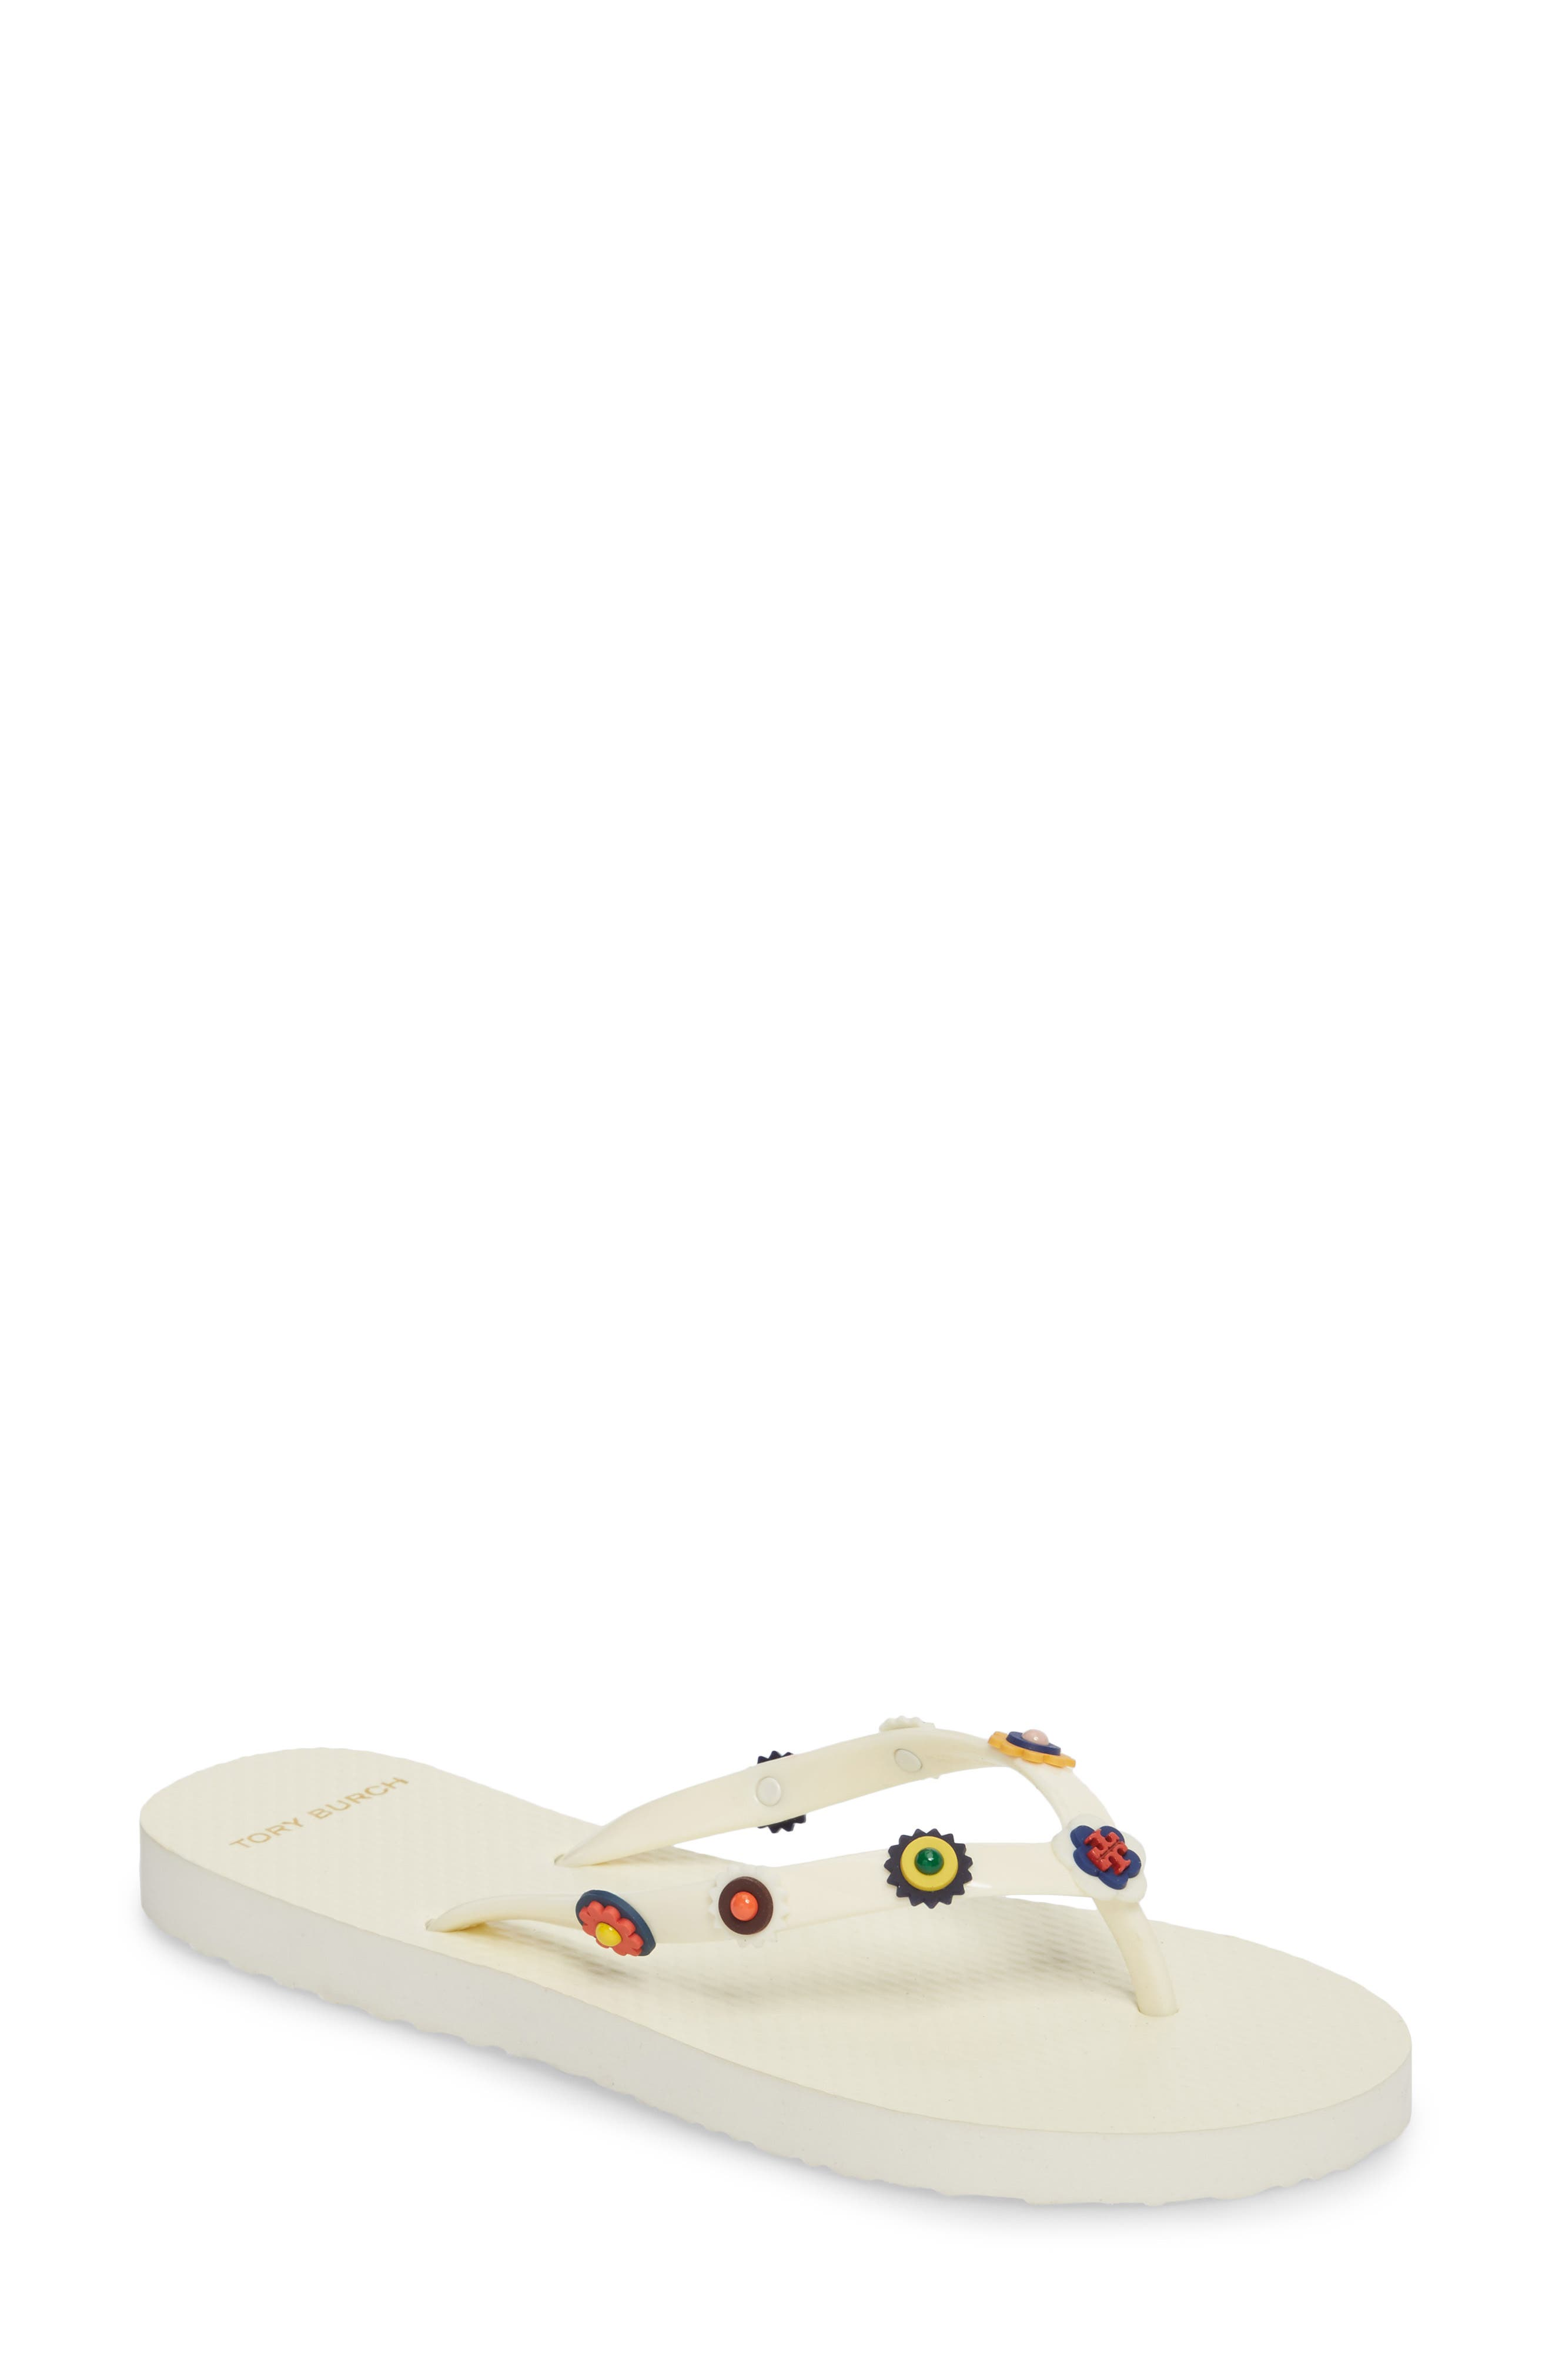 Tory Burch Marguerite 2 Studded Flip Flop (Women)